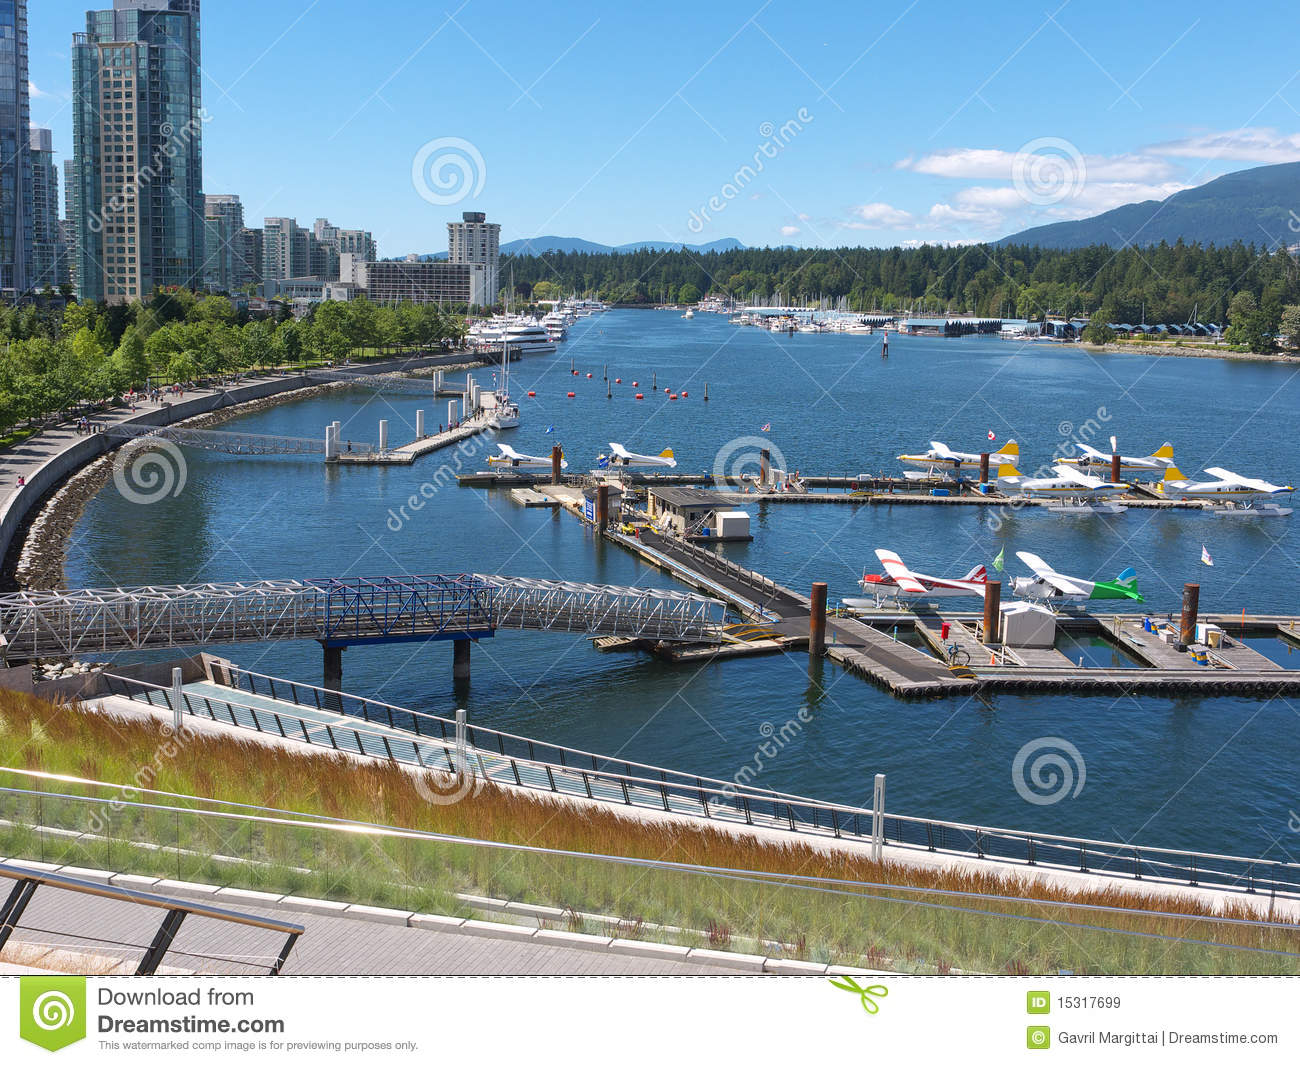 New airport at Coal Harbor Vancouver